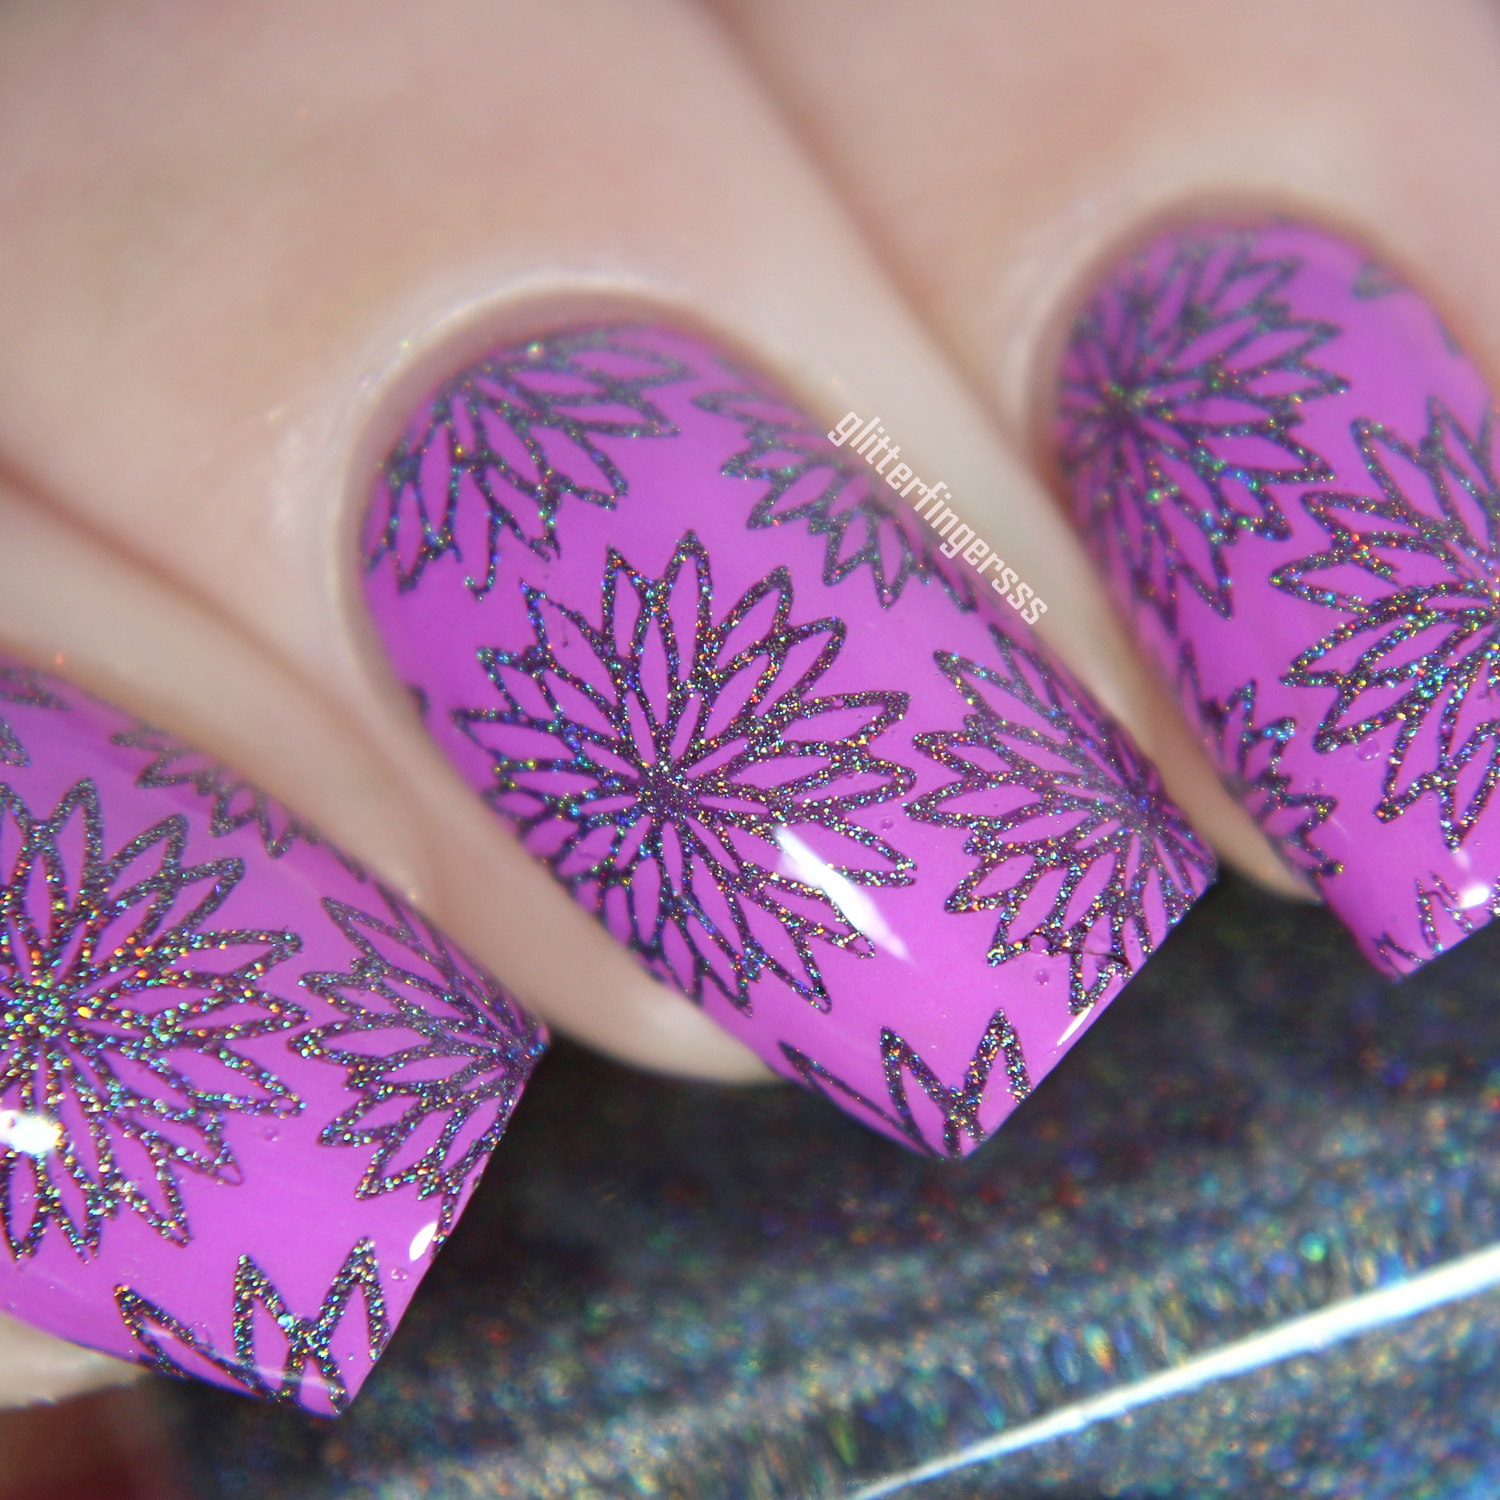 Colors by Llarowe | Stamping polishes ~ Glitterfingersss in english